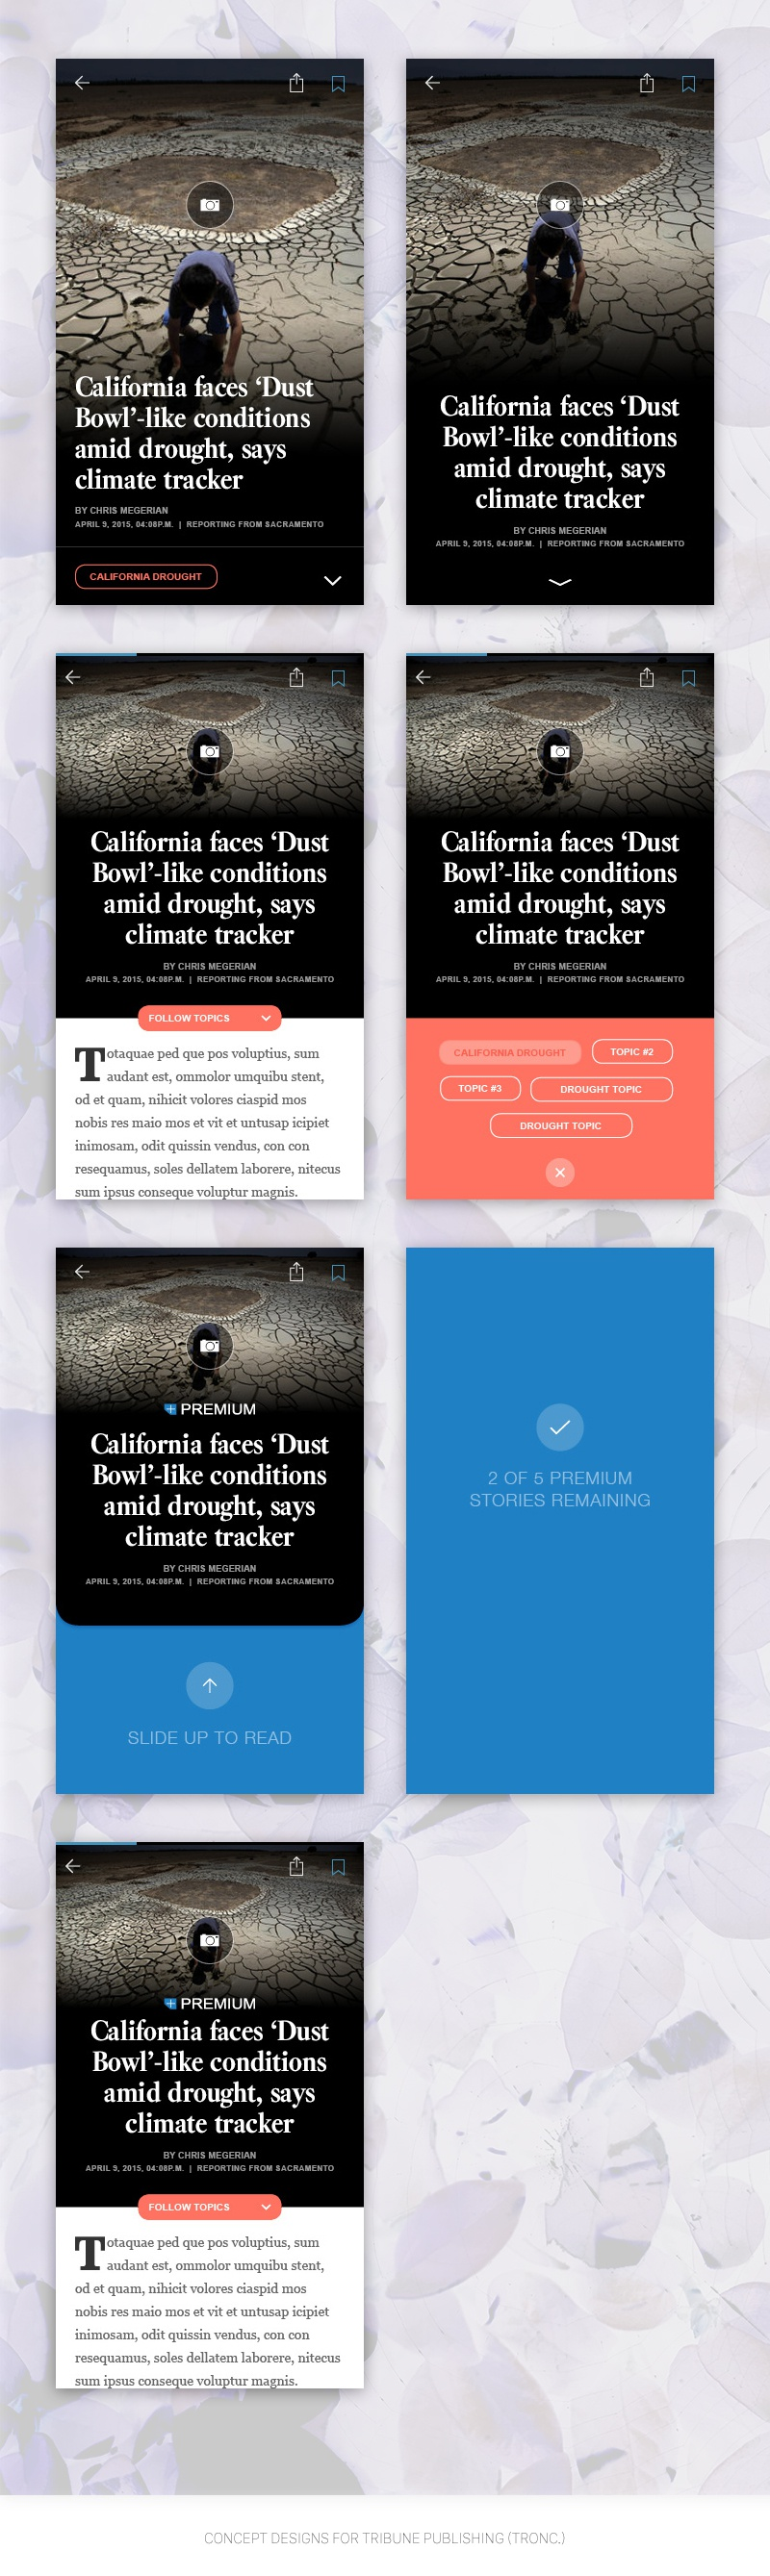 News app concepts latimes full dribbble 2